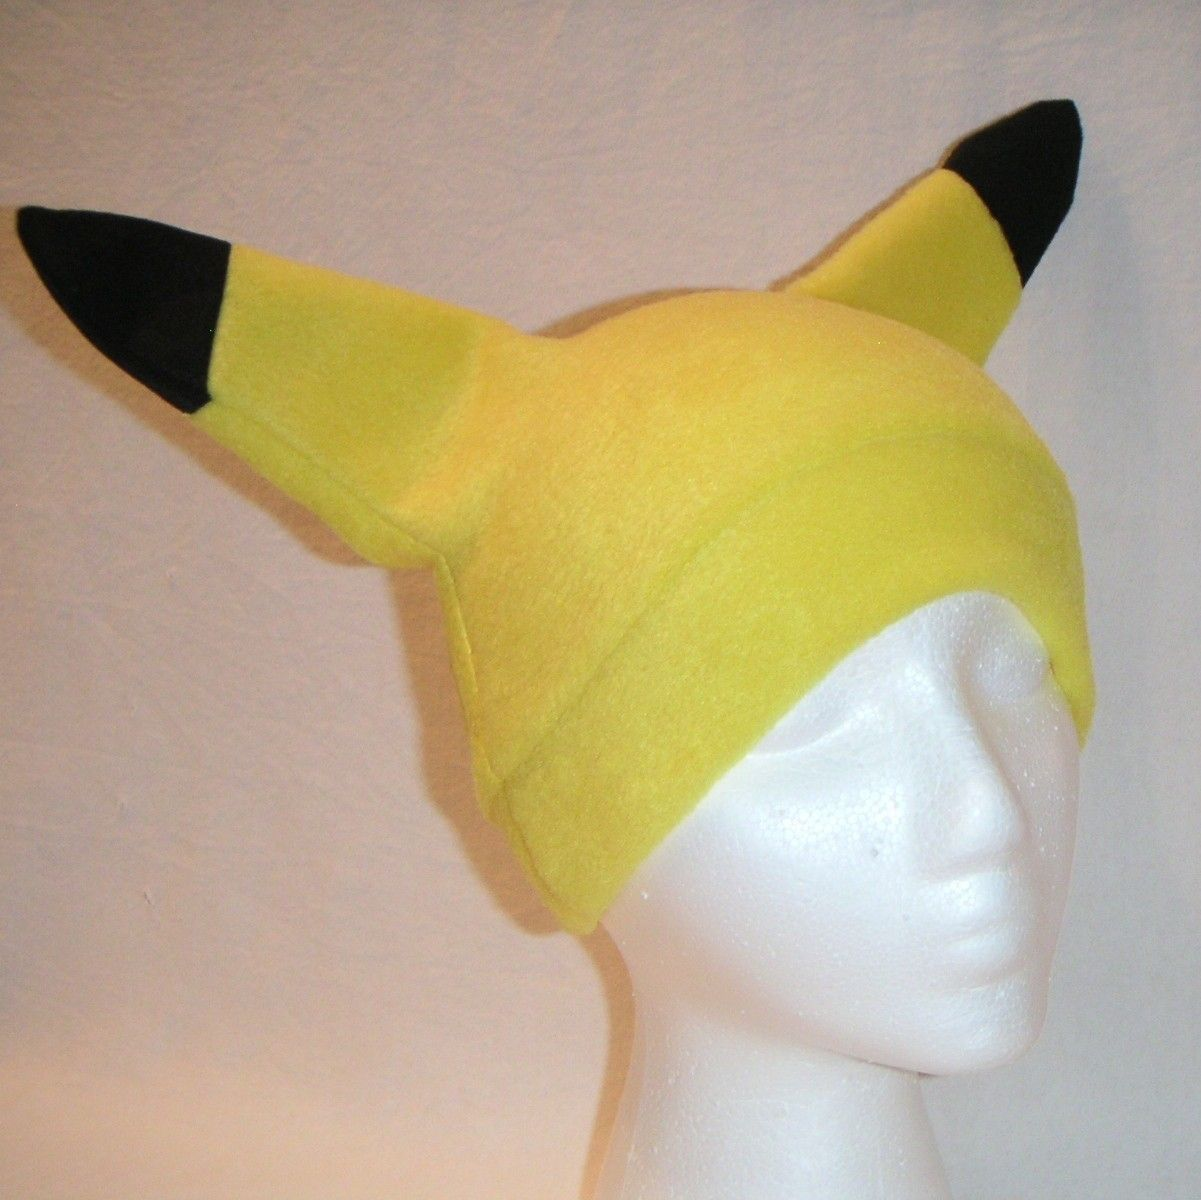 50c11576c25 New custom made ADULT SIZE Pikachu Hat Costume Ski Hat ears Cap Halloween  Pokemon. Add yellow sweats and pink cheeks